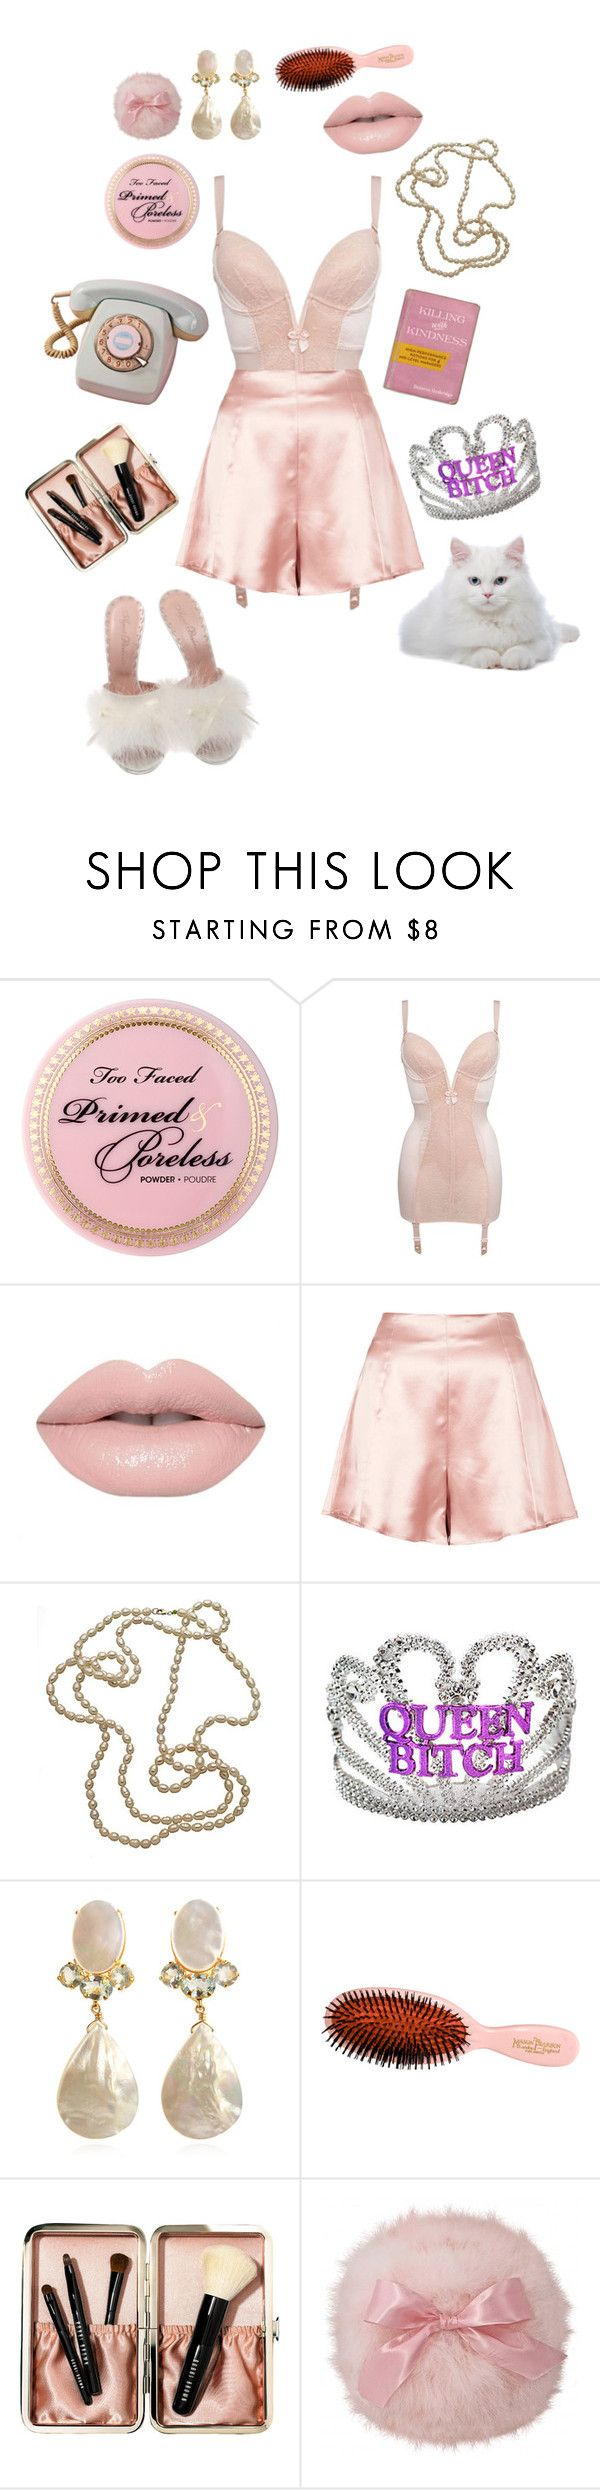 """""""I'm in control"""" by iheartdropdeadkatie ❤ liked on Polyvore featuring Gossard, Boutique, Wasabi Jewelry, Gypsy, Bounkit, Mason Pearson, Bobbi Brown Cosmetics, Agent Provocateur and vintage"""